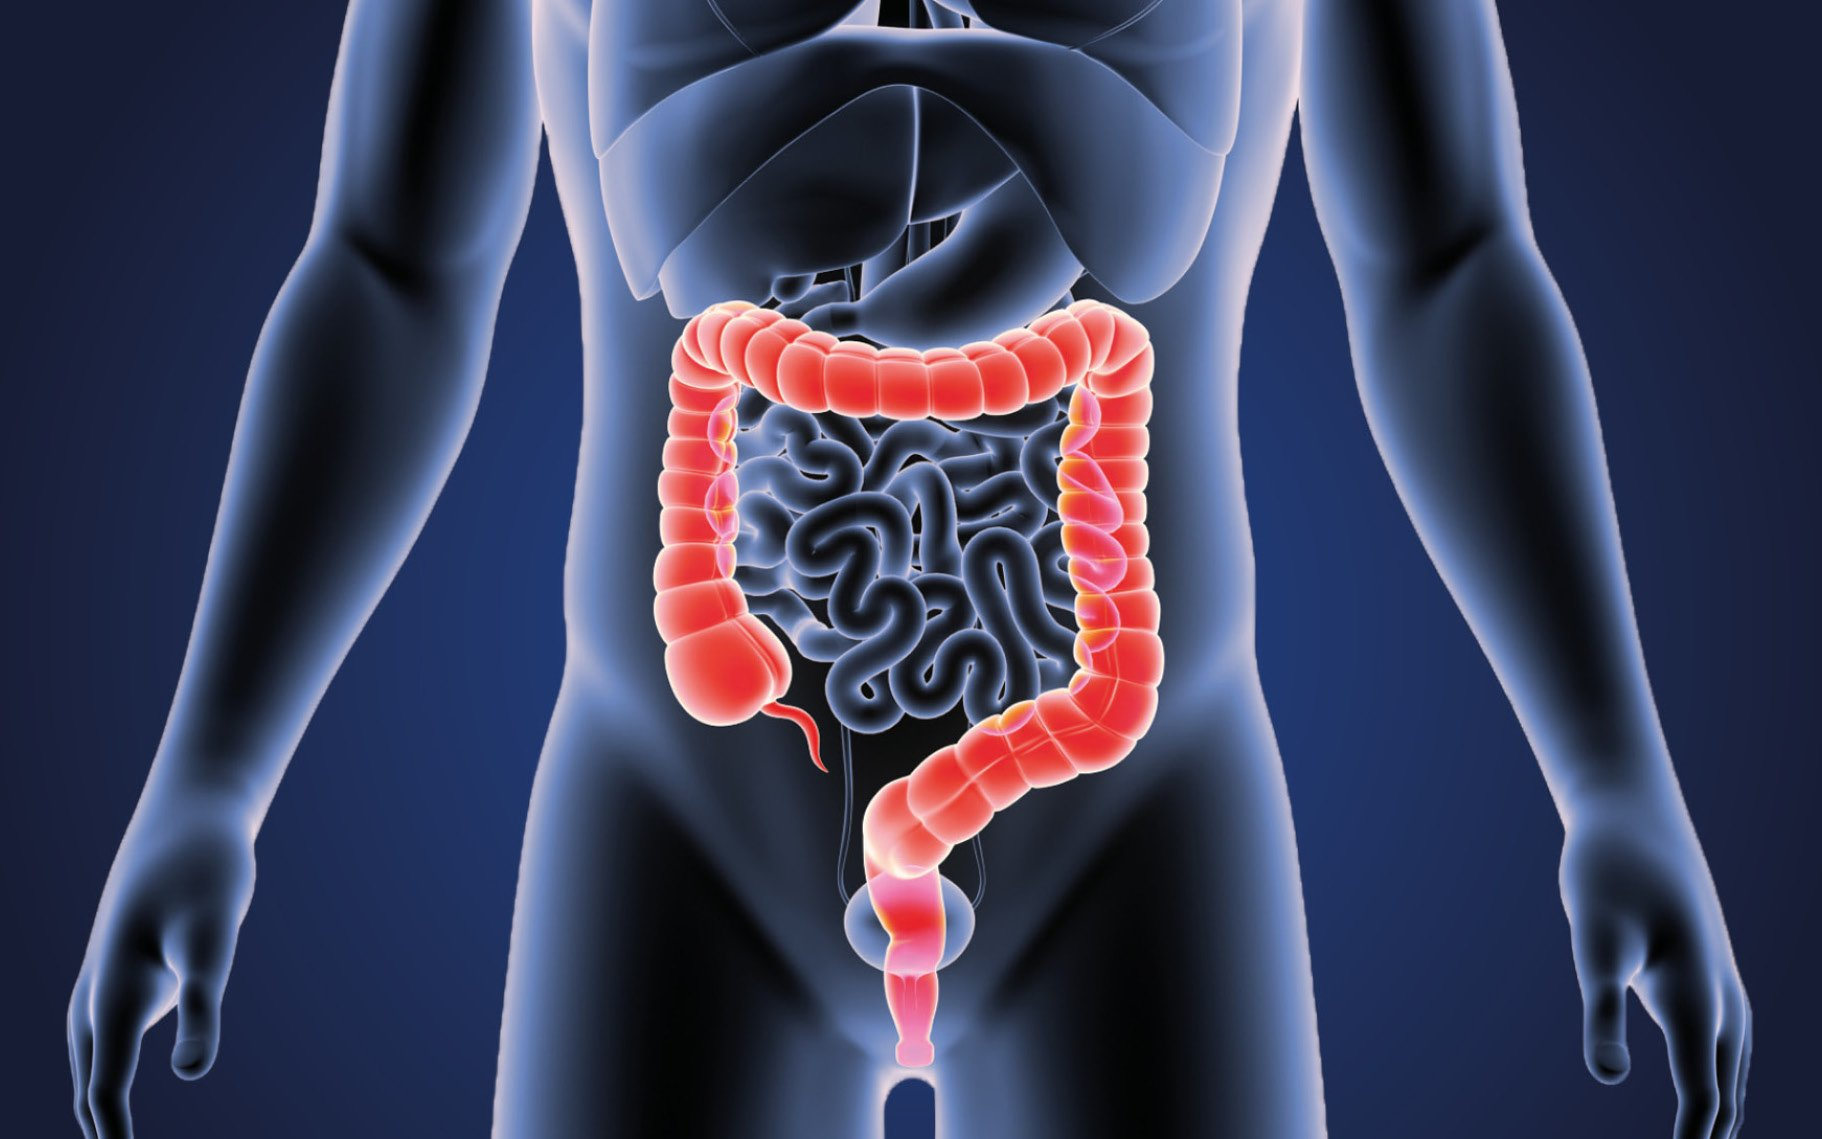 Strange Colon Discovery Explains Racial Disparities in Colorectal Cancer